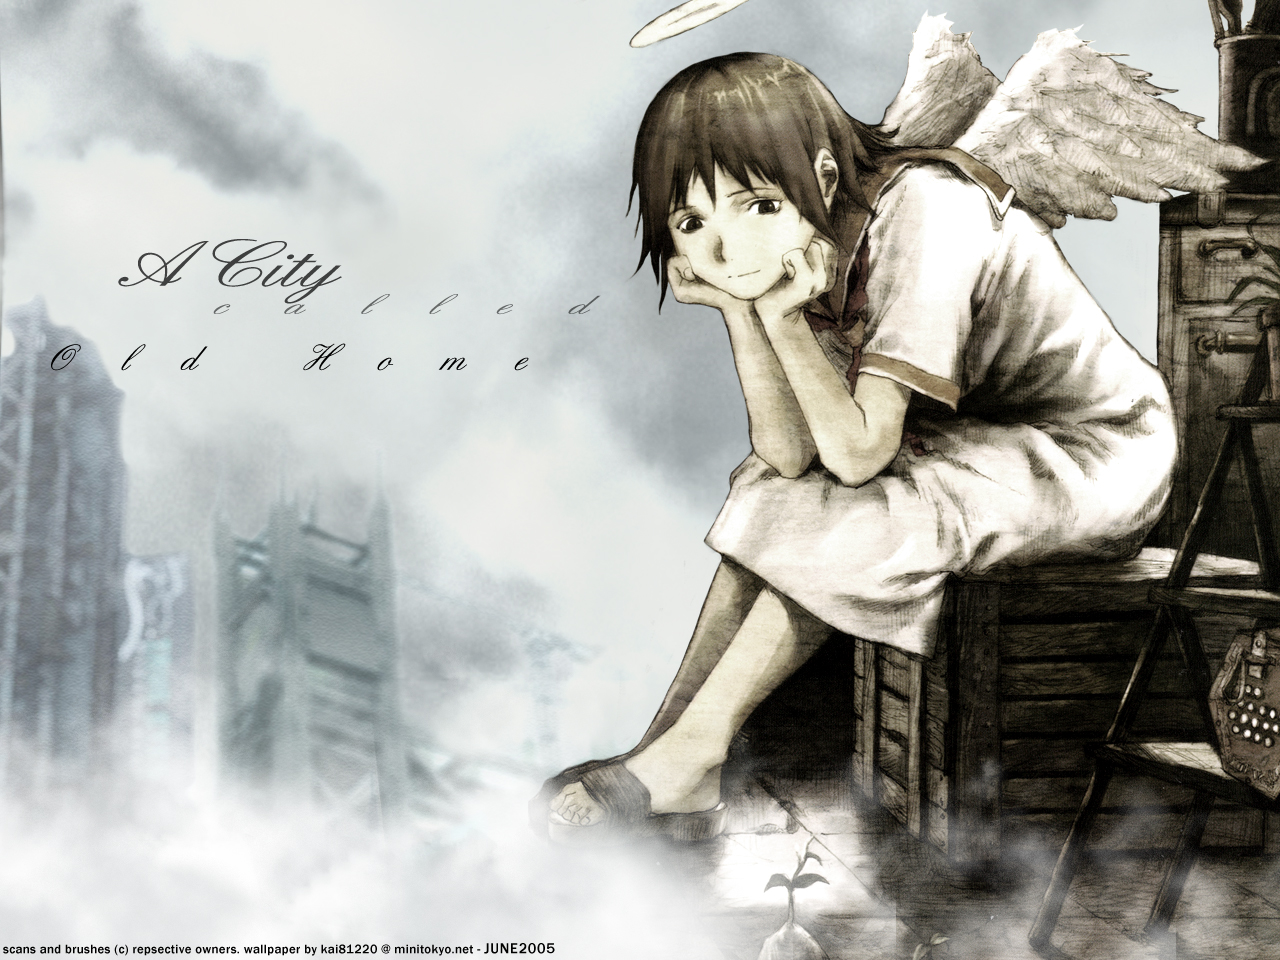 Haibane Renmei Wallpaper Haibanea City Called Old Home